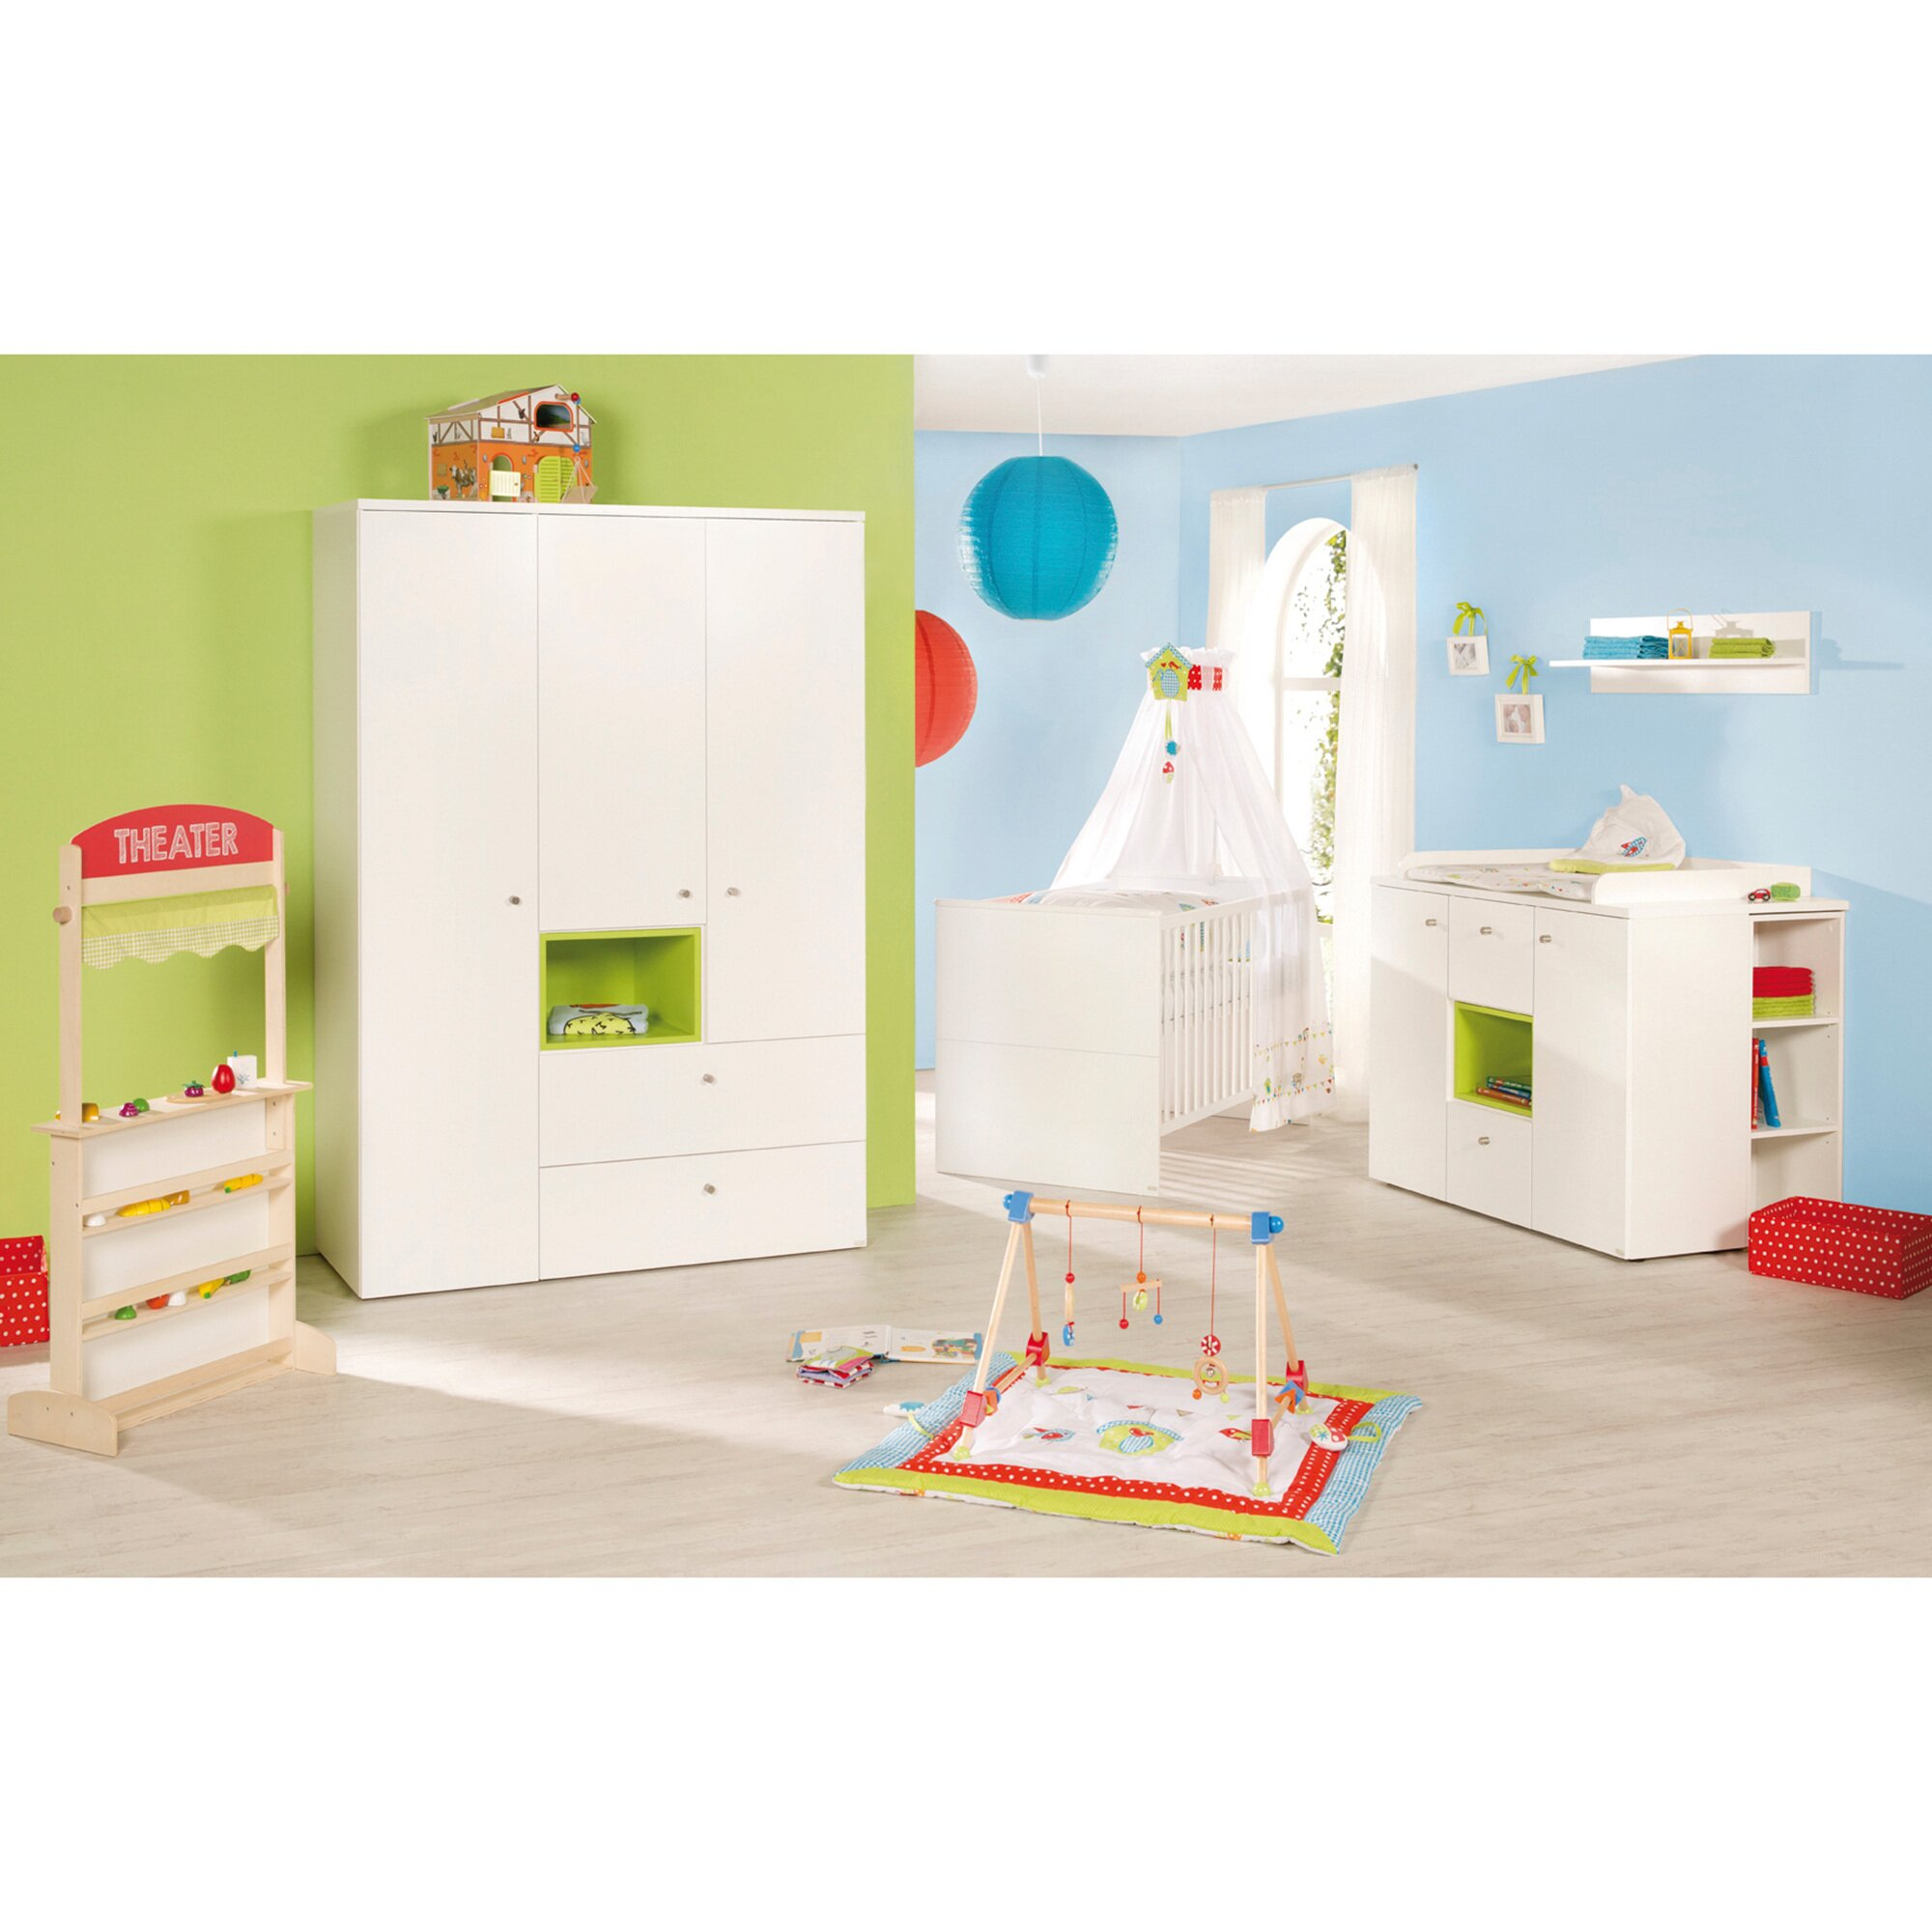 roba kinderzimmer set boxx bett wickelkommode schrank 3 t rig preisvergleich network. Black Bedroom Furniture Sets. Home Design Ideas